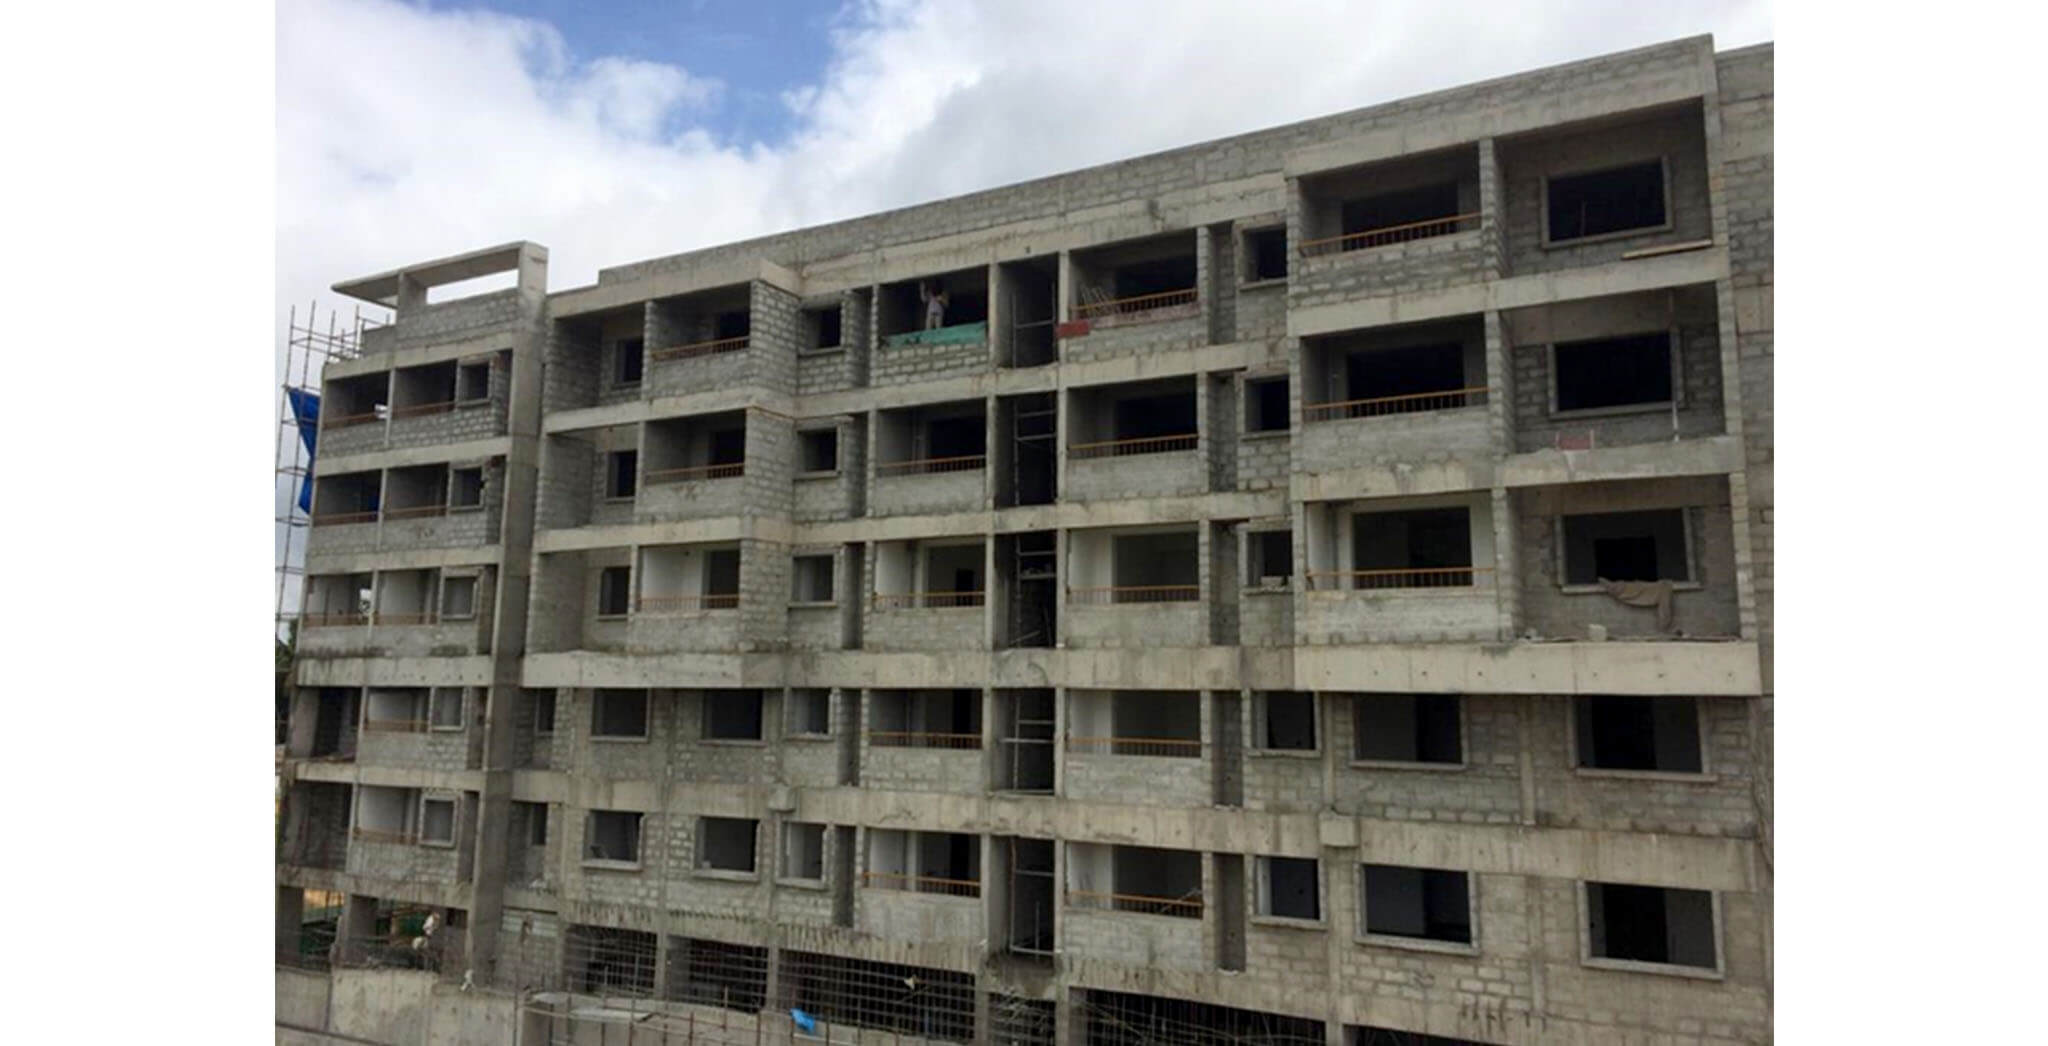 Jul 2020 - Blocks K, L, M & N: Structure, Blockwork, MS work completed, 4th floor plastering work-in-progress